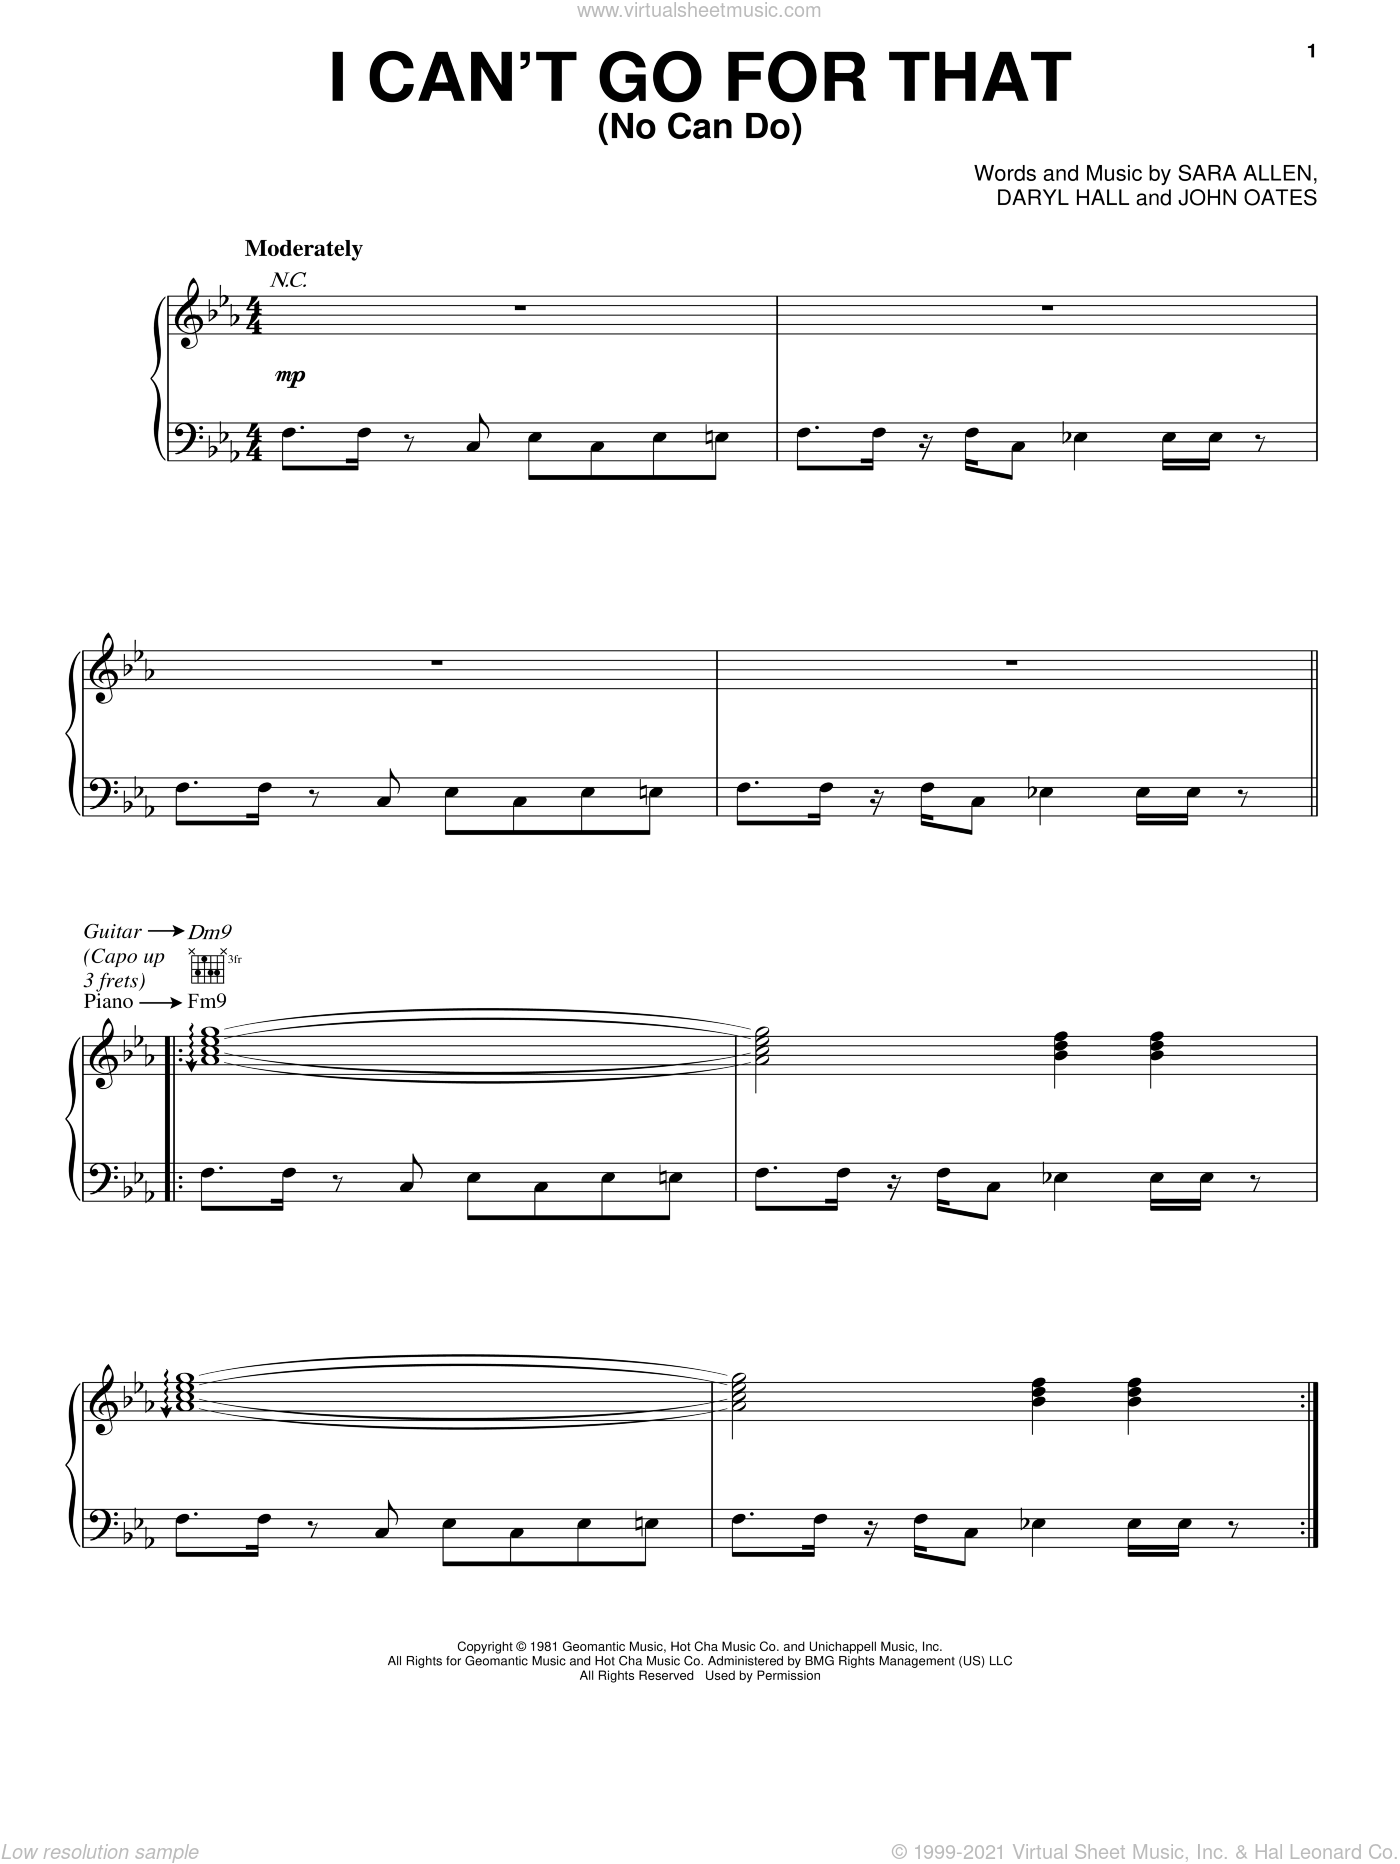 I Can't Go For That sheet music for voice, piano or guitar by Sara Allen